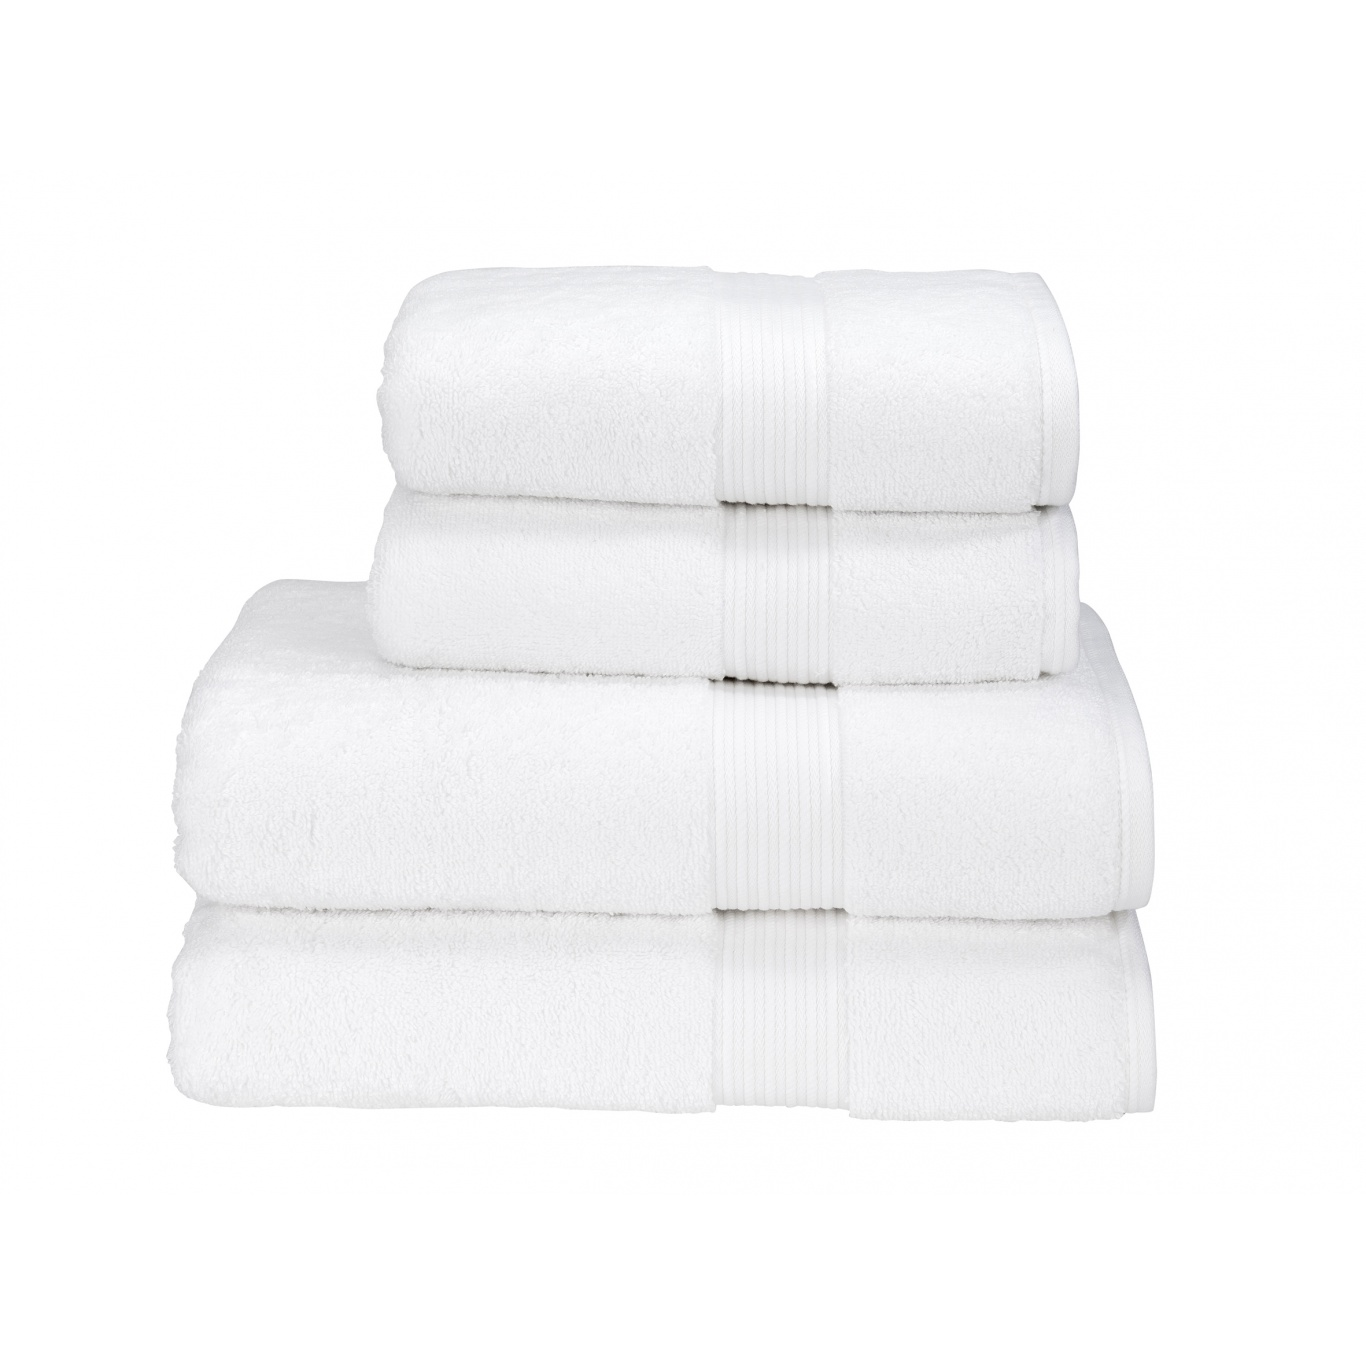 Image of Christy Supreme Supima Hygro White Towels